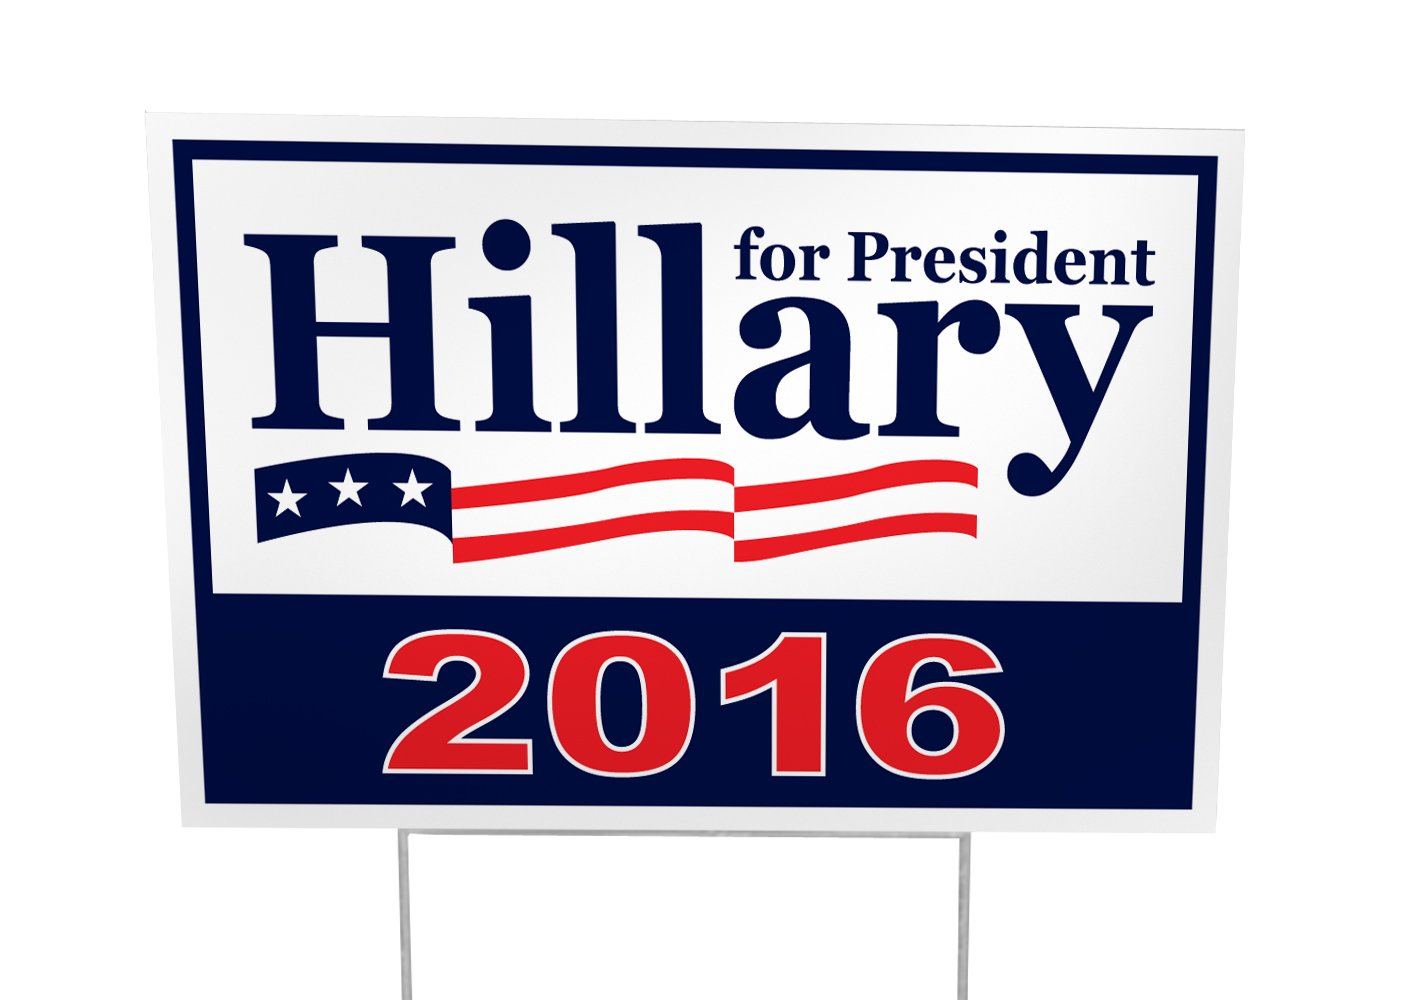 Hillary Clinton For President 2016 Outdoor Yard Sign 25 Pack - 12x18 - Imagine This Company